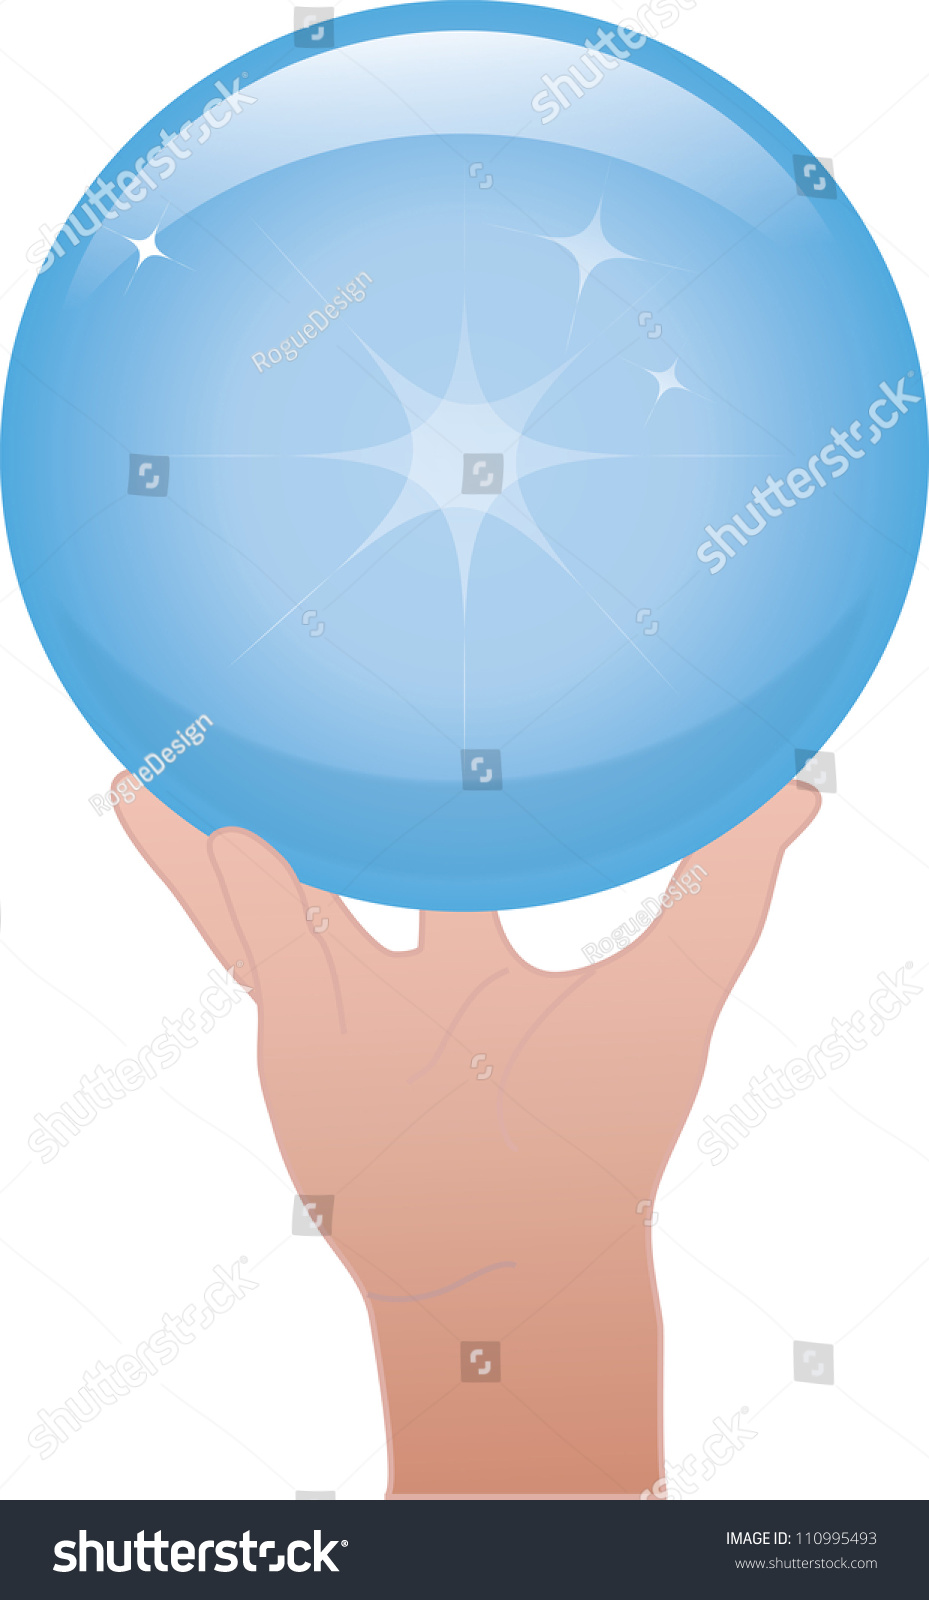 Clip Art Illustration Of A Hand Holding A Crystal Ball Or ...